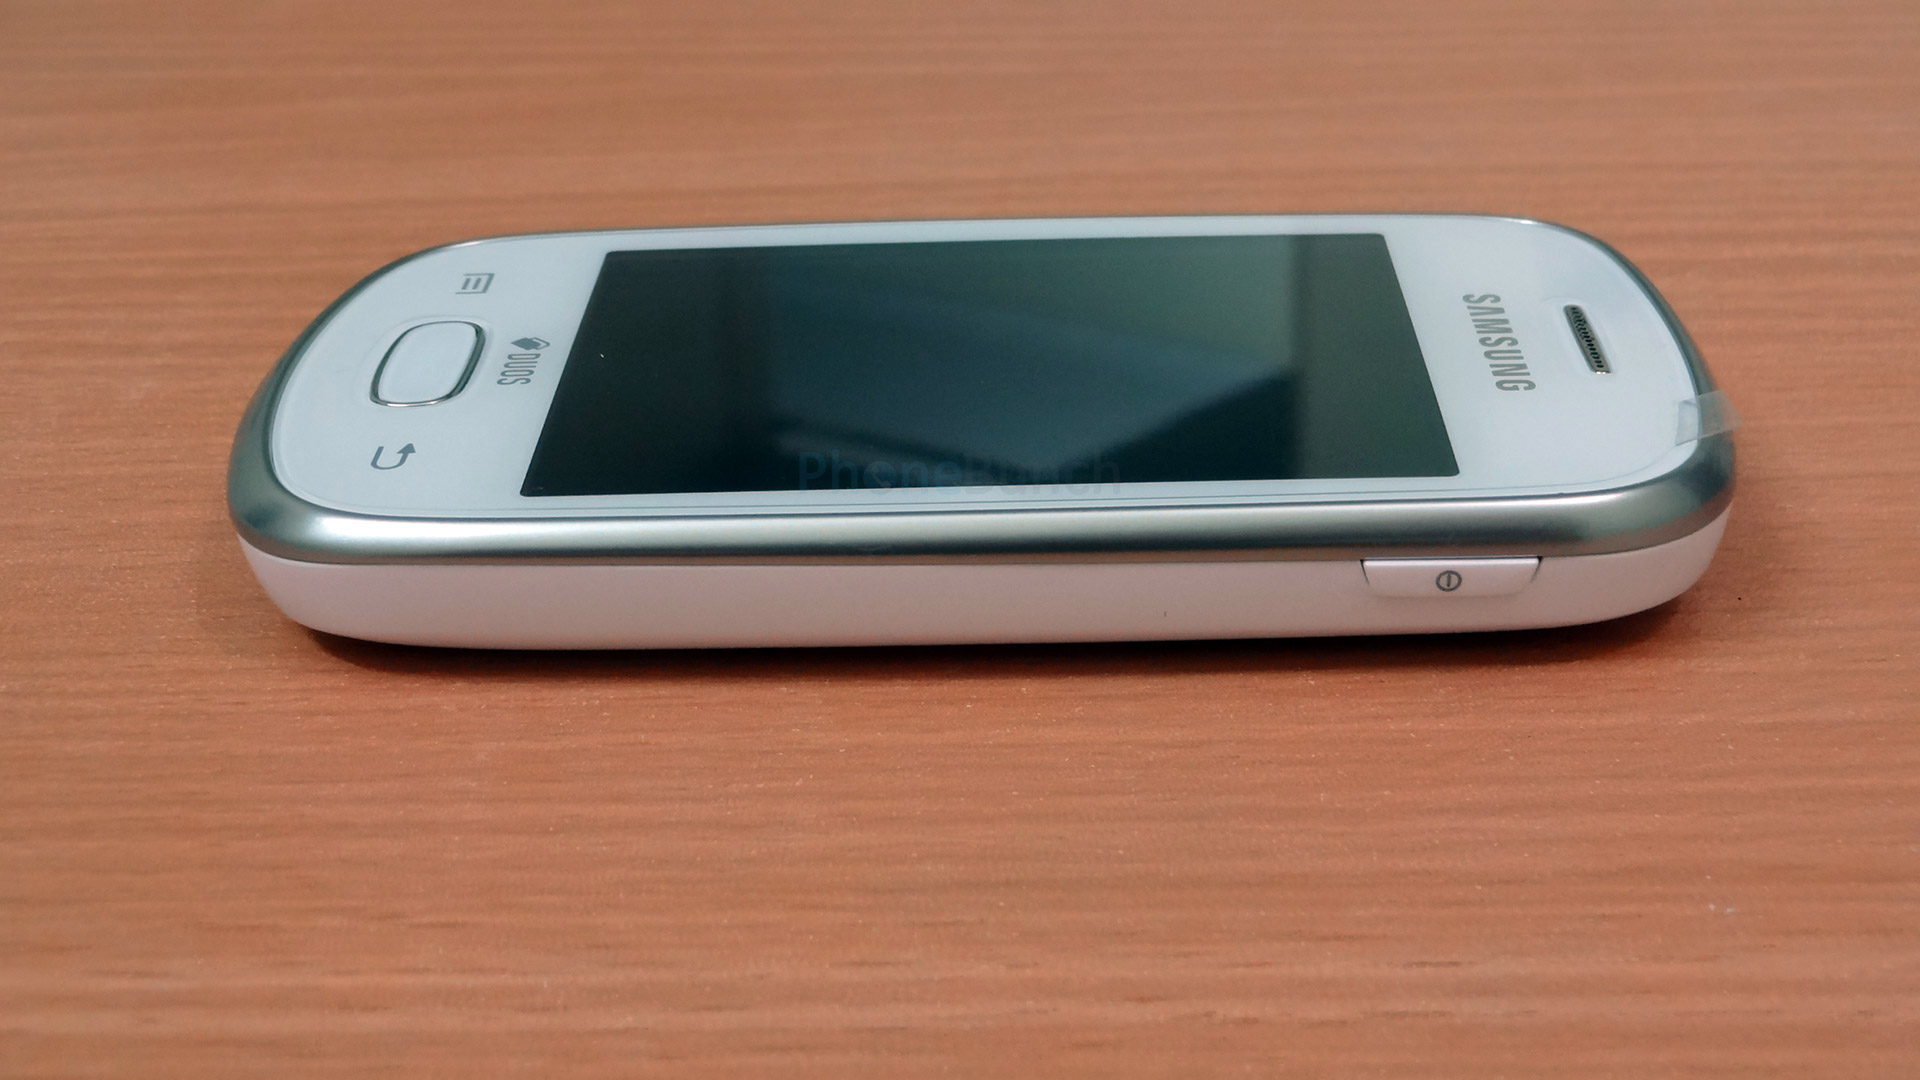 galaxy star s5282 review - photo #29